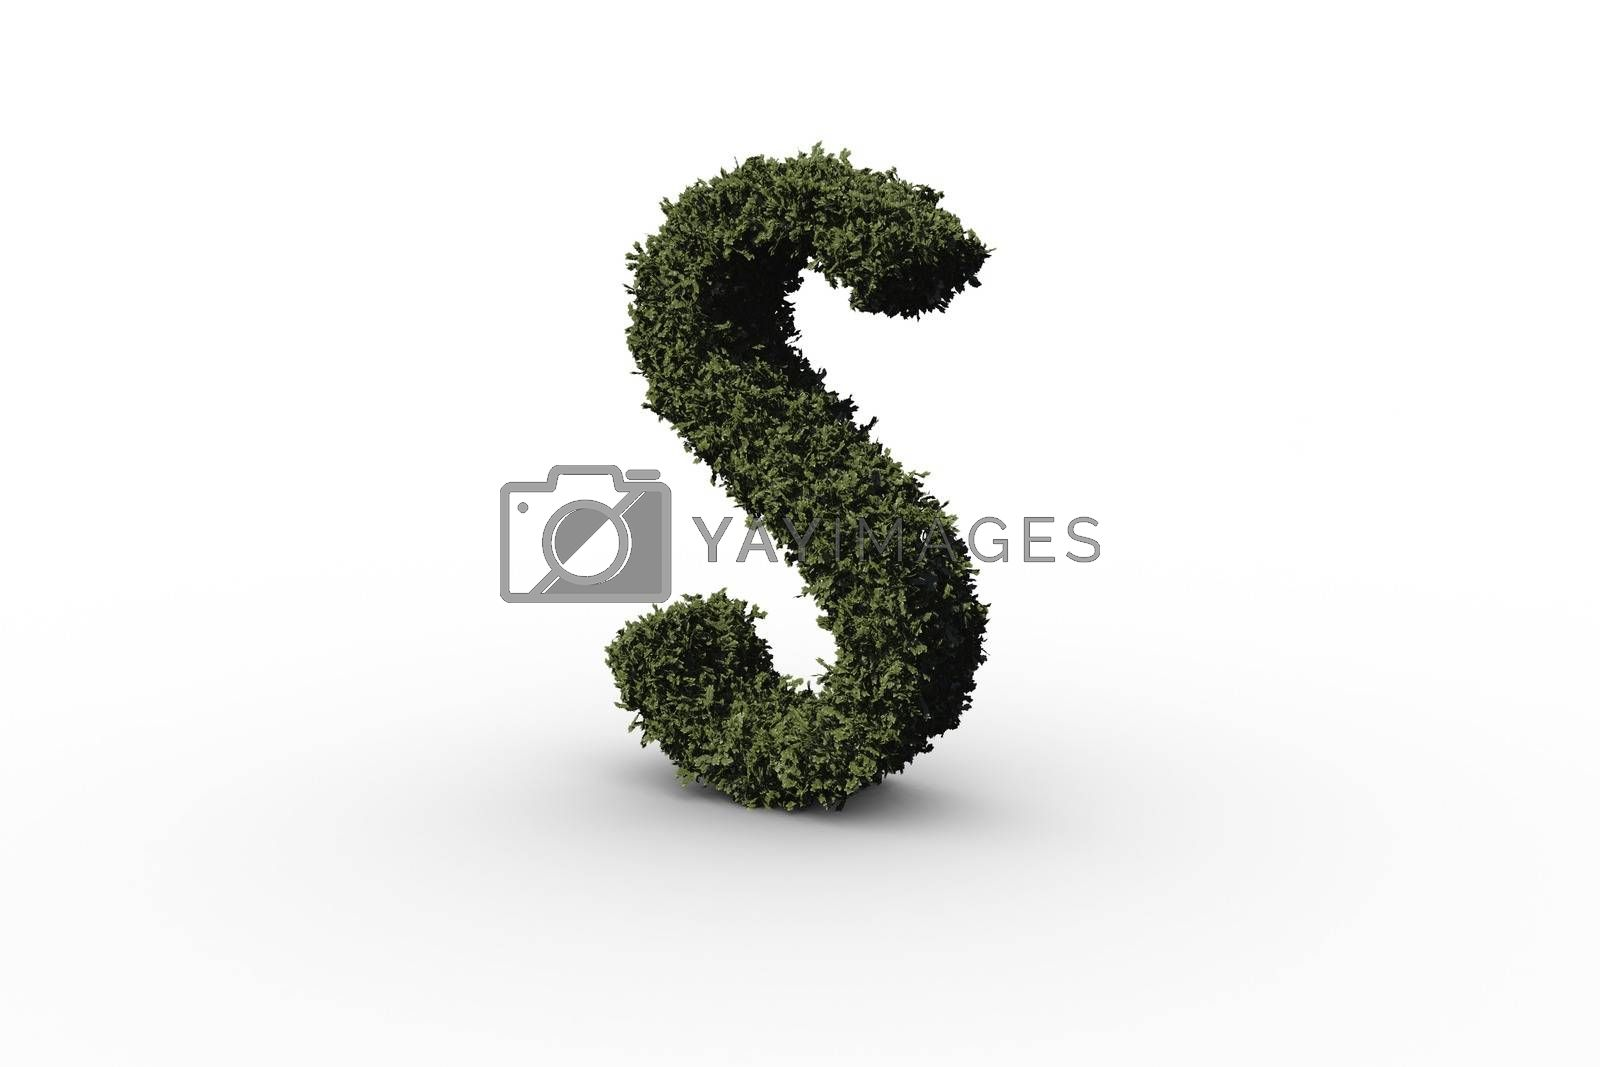 Royalty free image of Capital letter s made of leaves by Wavebreakmedia